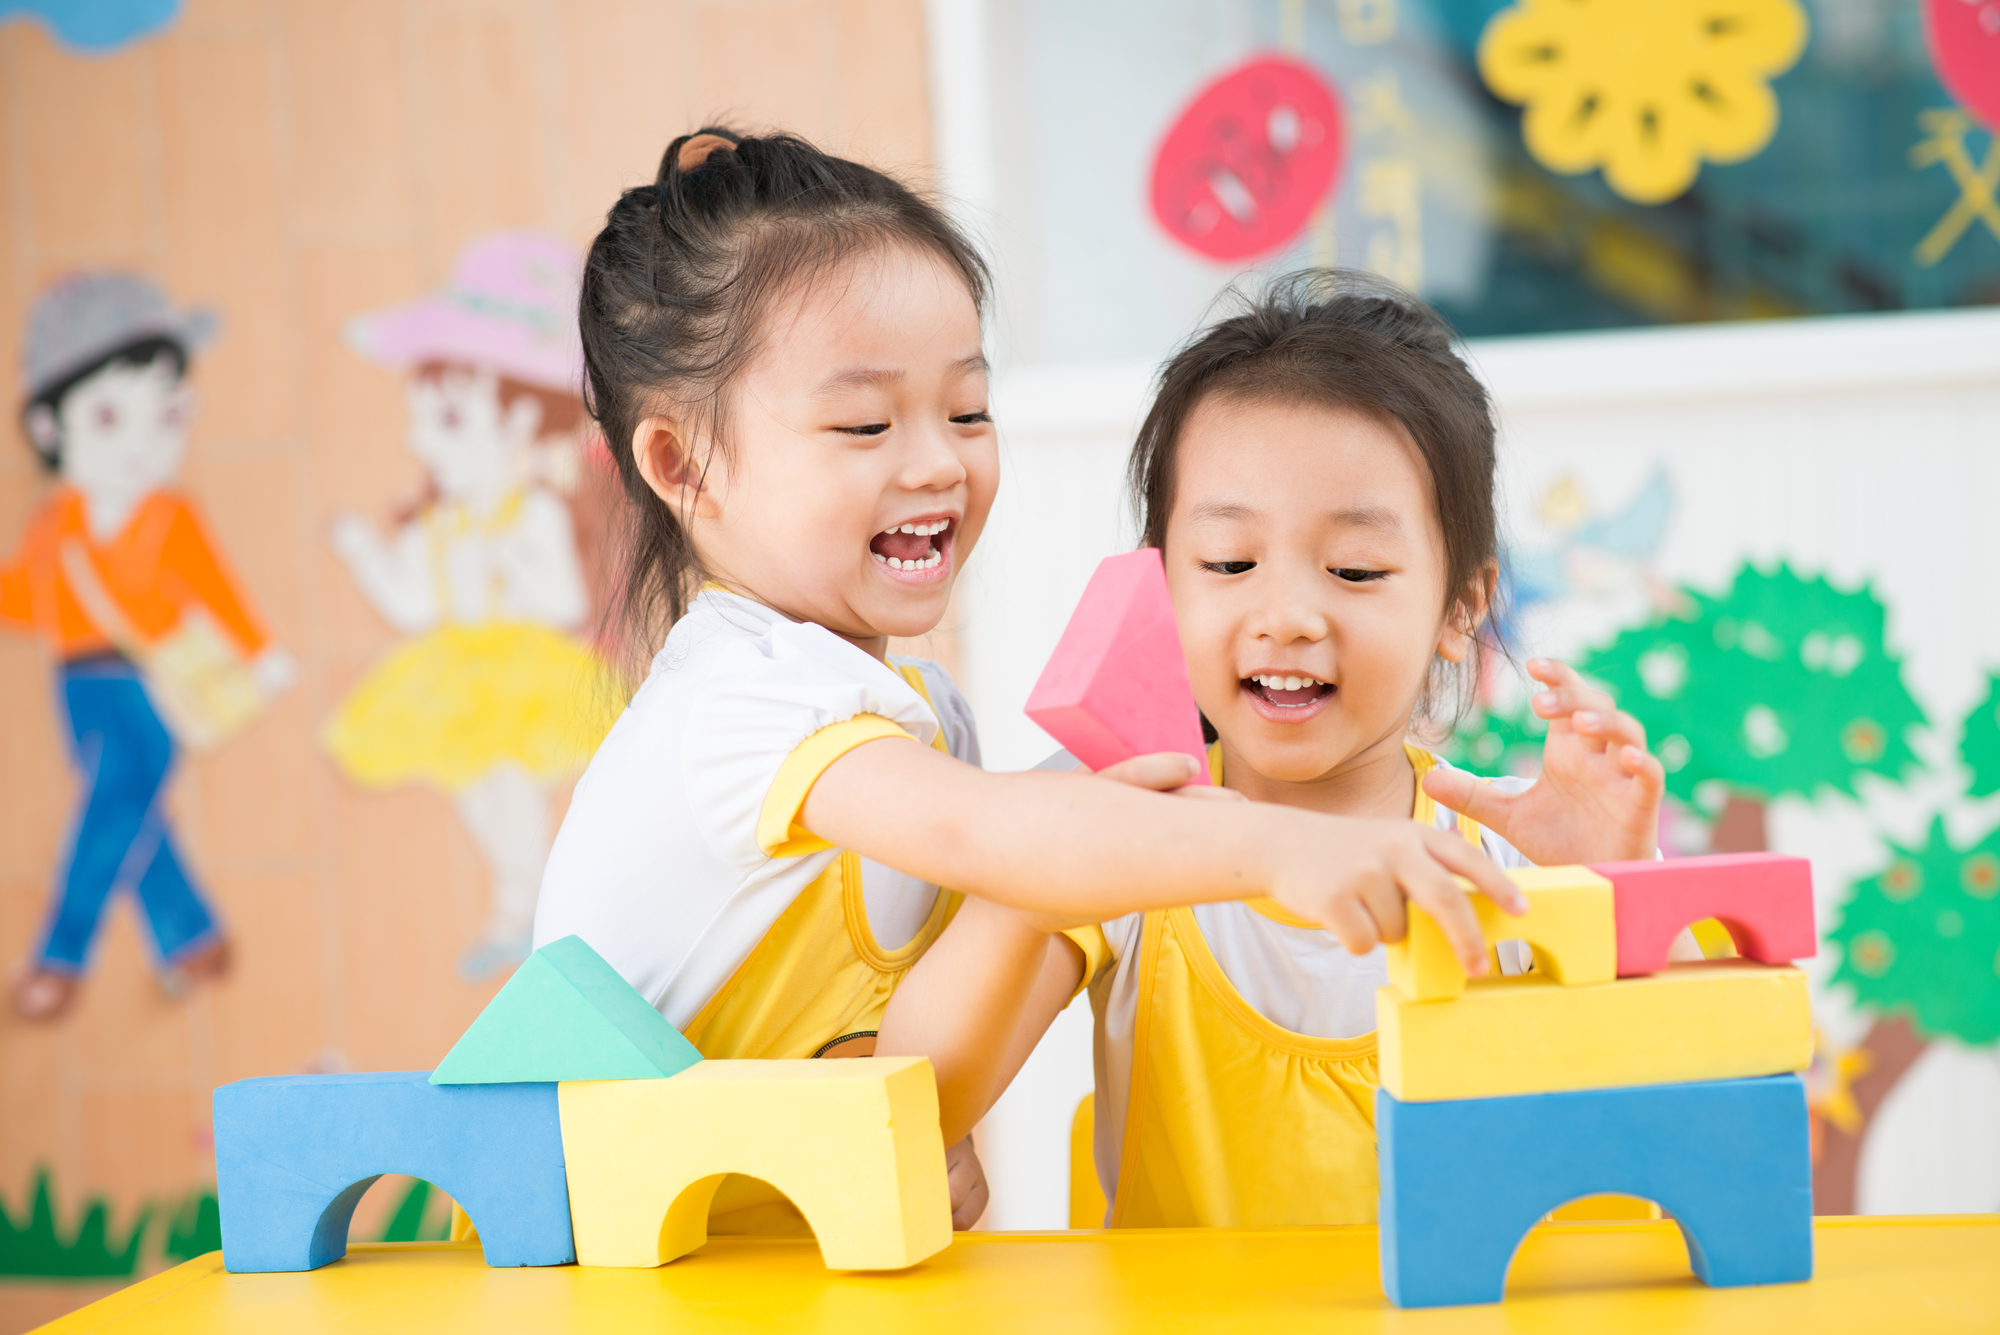 Early Childhood Education Center Explains the Benefits of